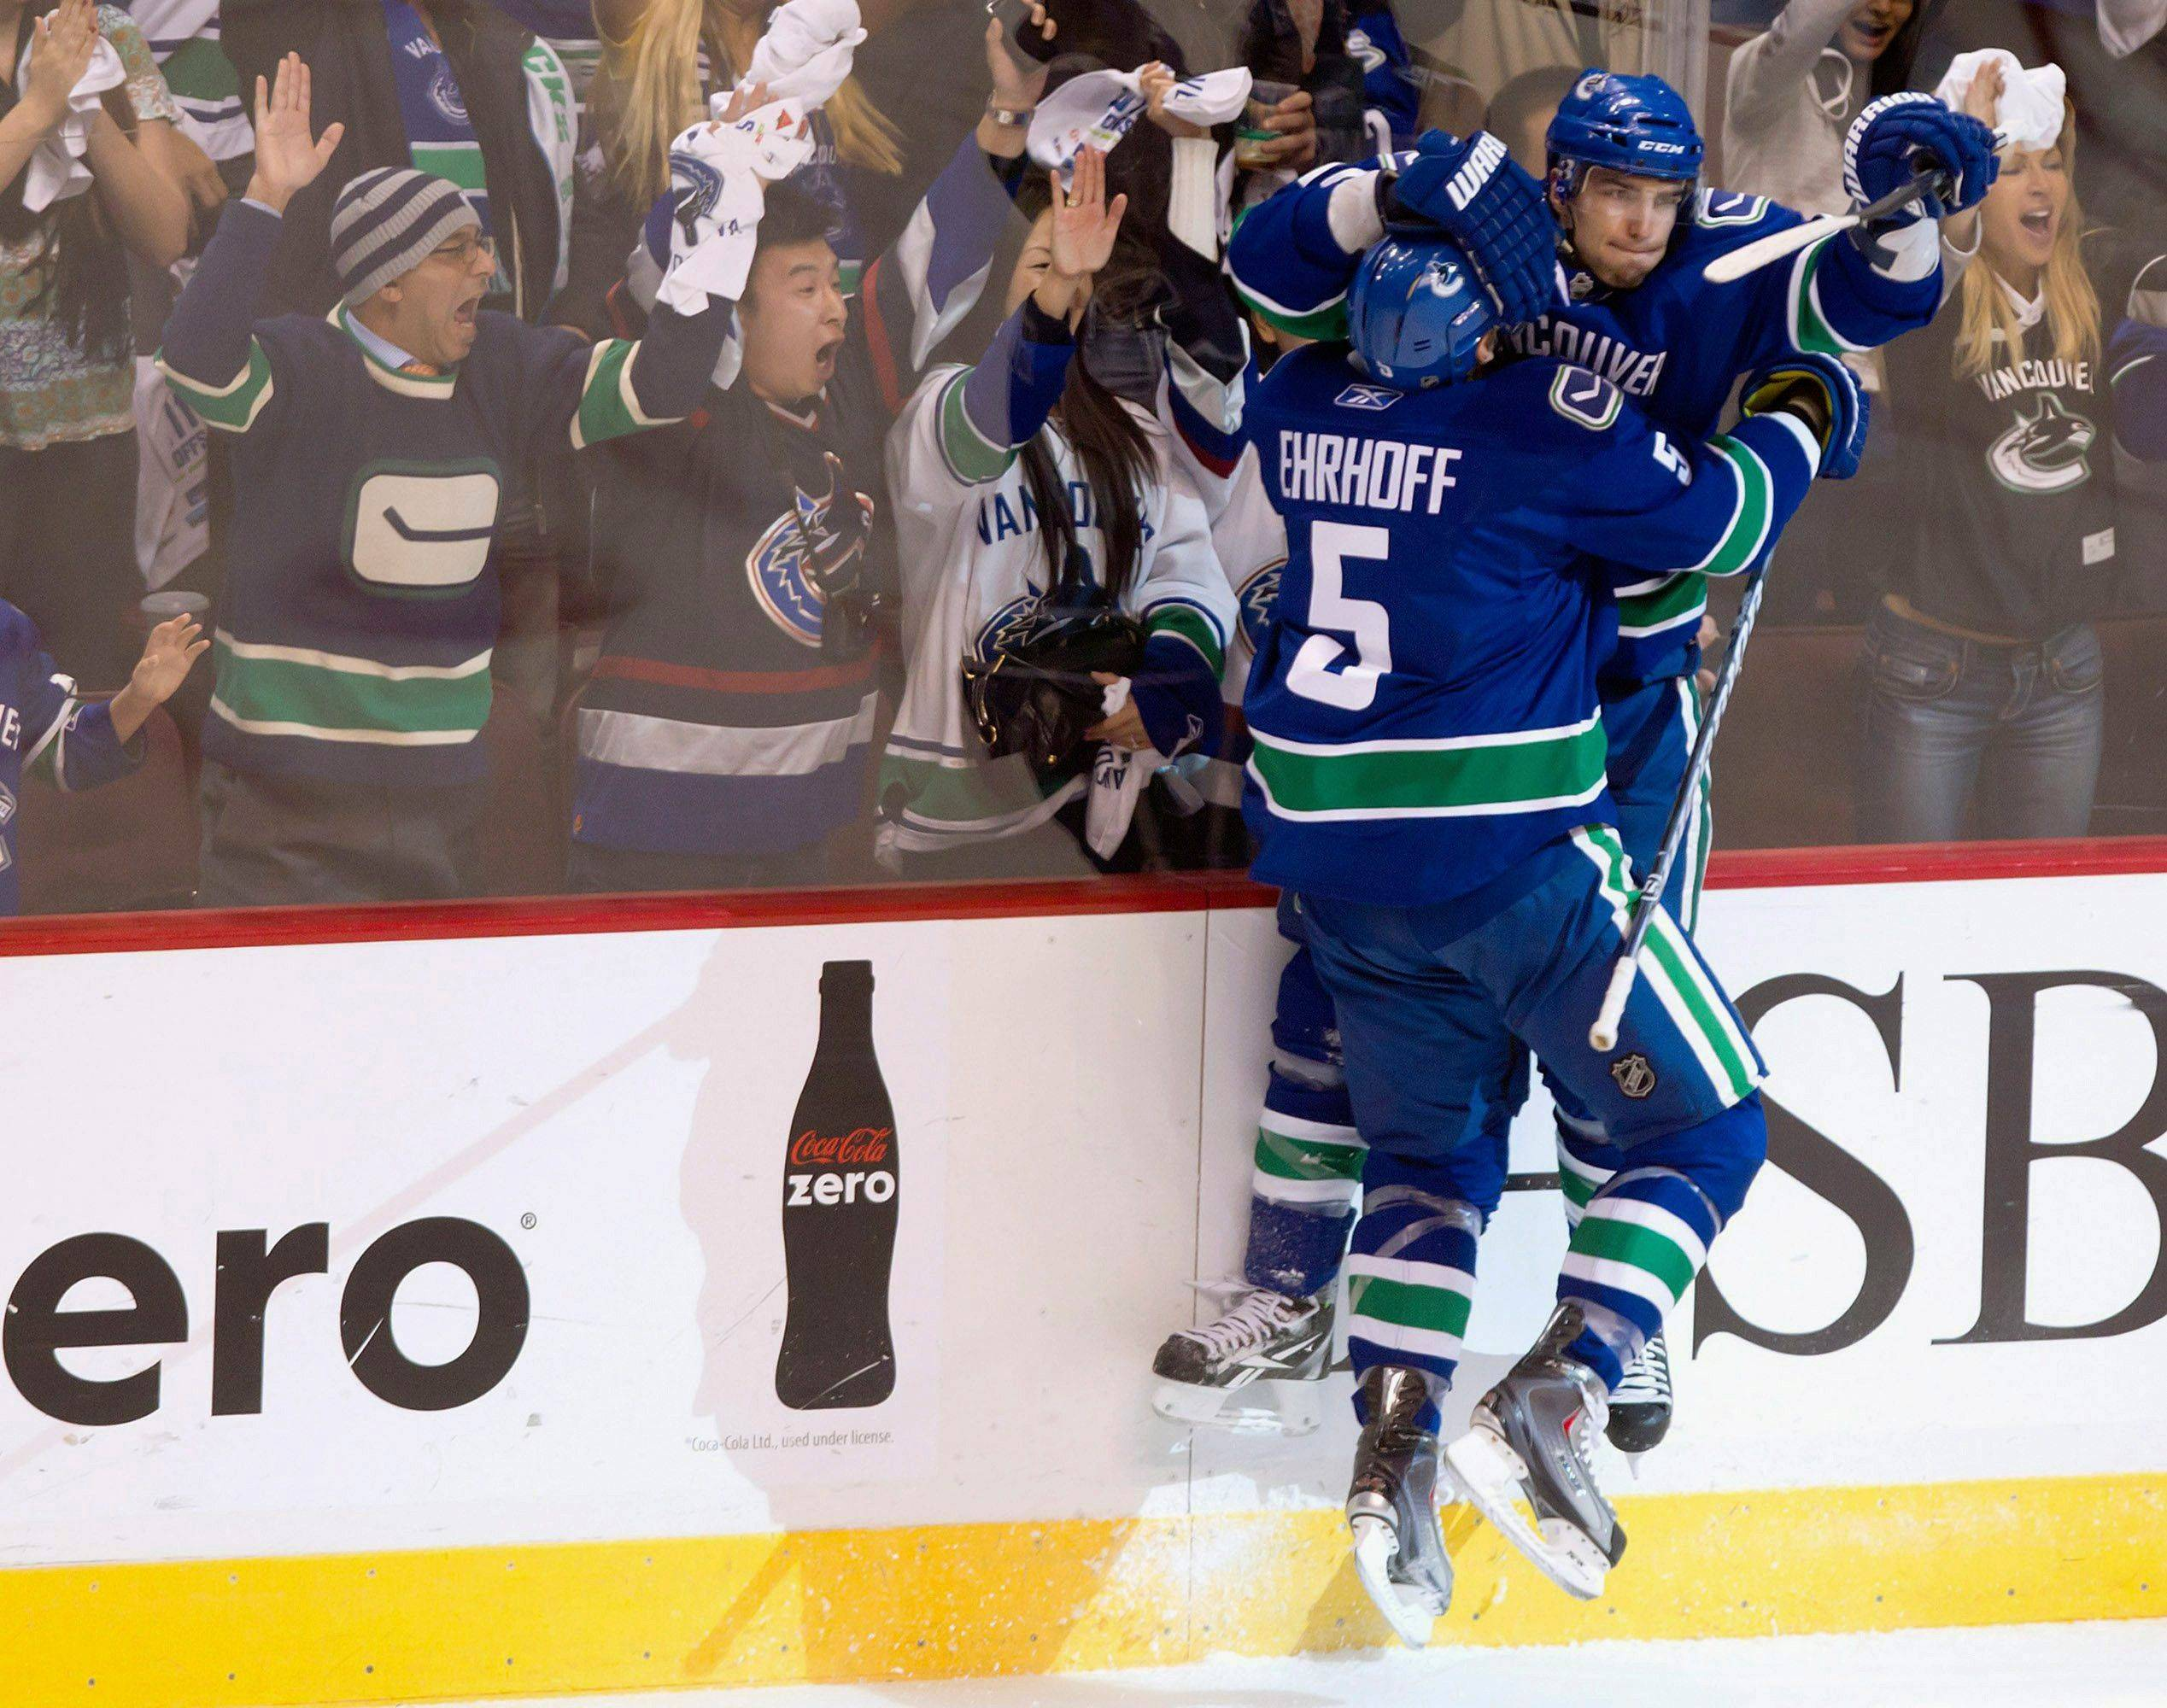 Vancouver Canucks' Christian Ehrhoff, left, and Alex Burrows celebrate Burrows' goal against the Blackhawks.